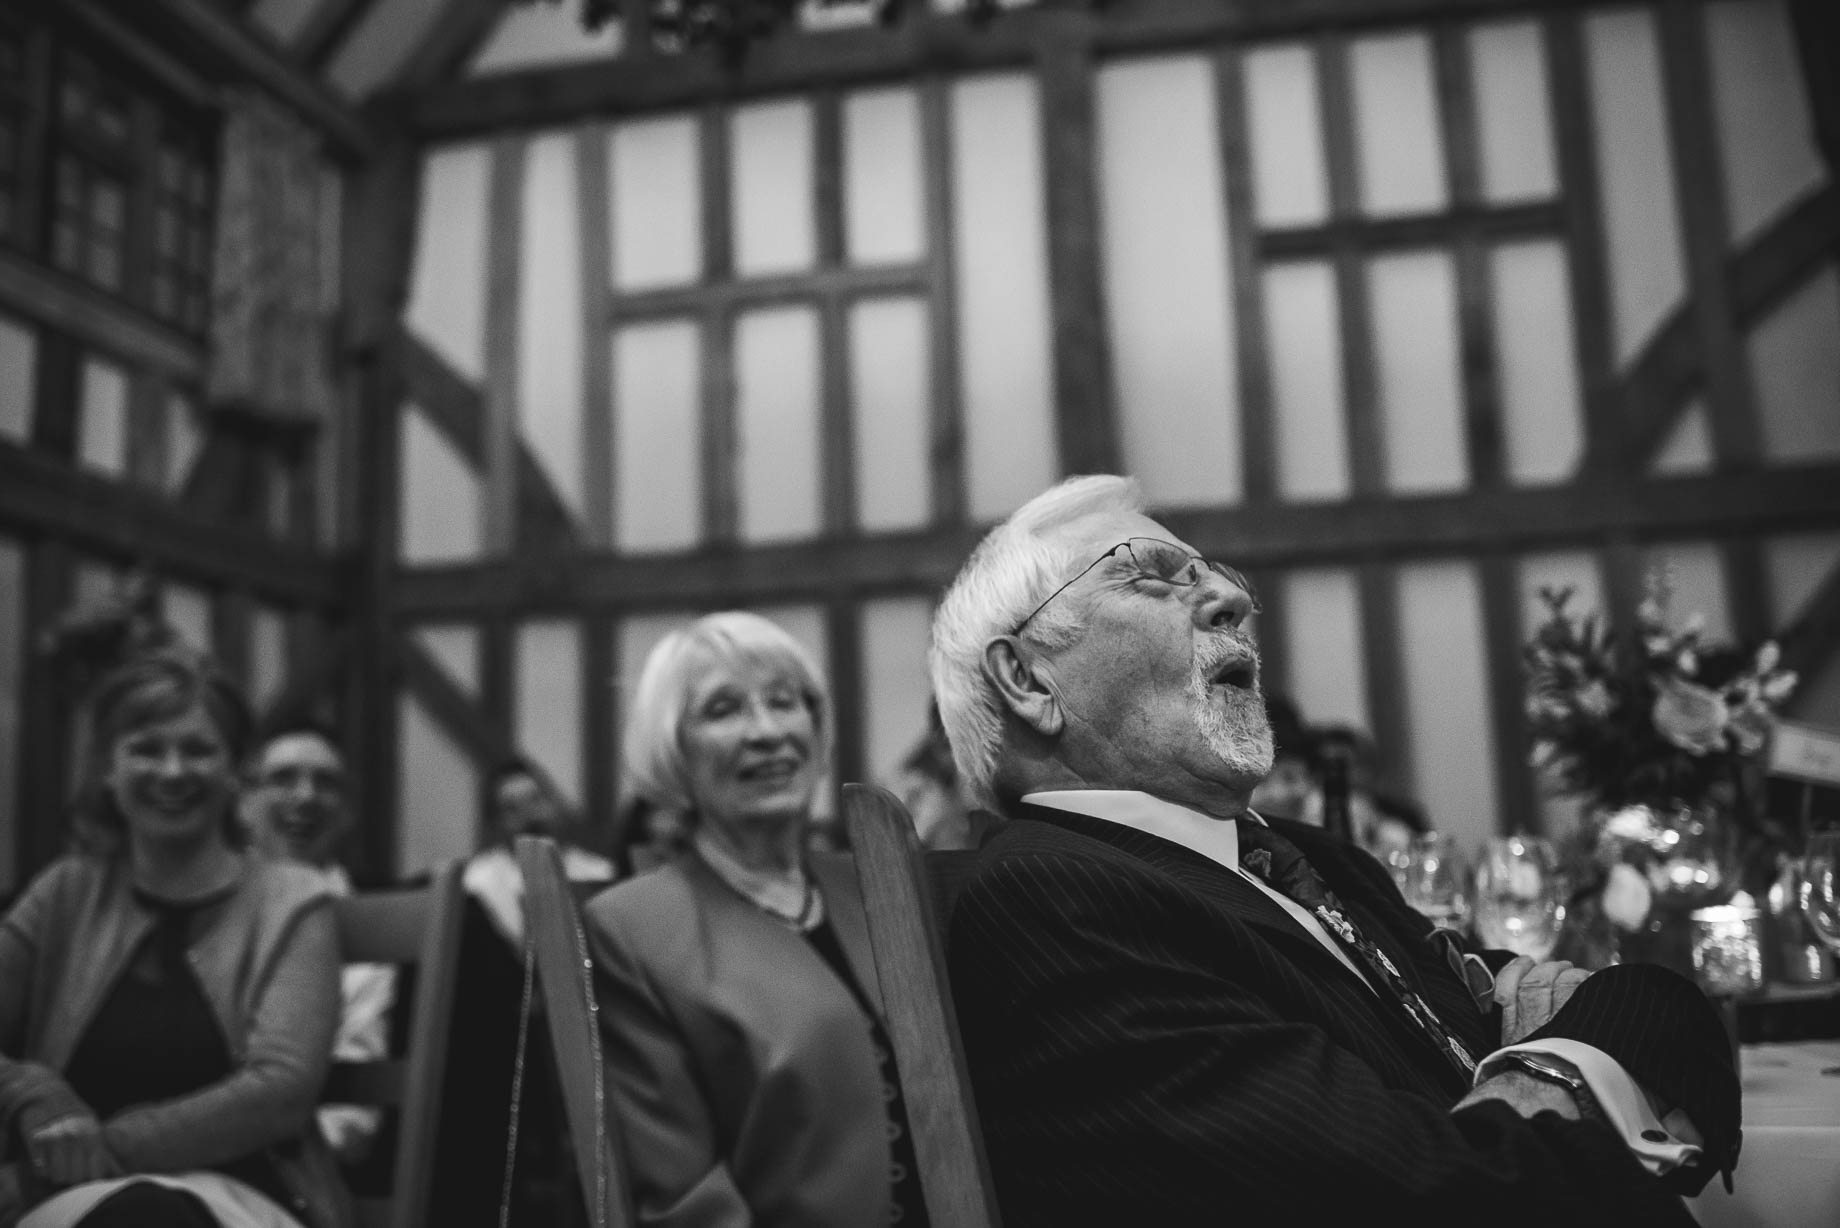 Surrey Wedding Photography by Guy Collier - Becca and James (139 of 145)